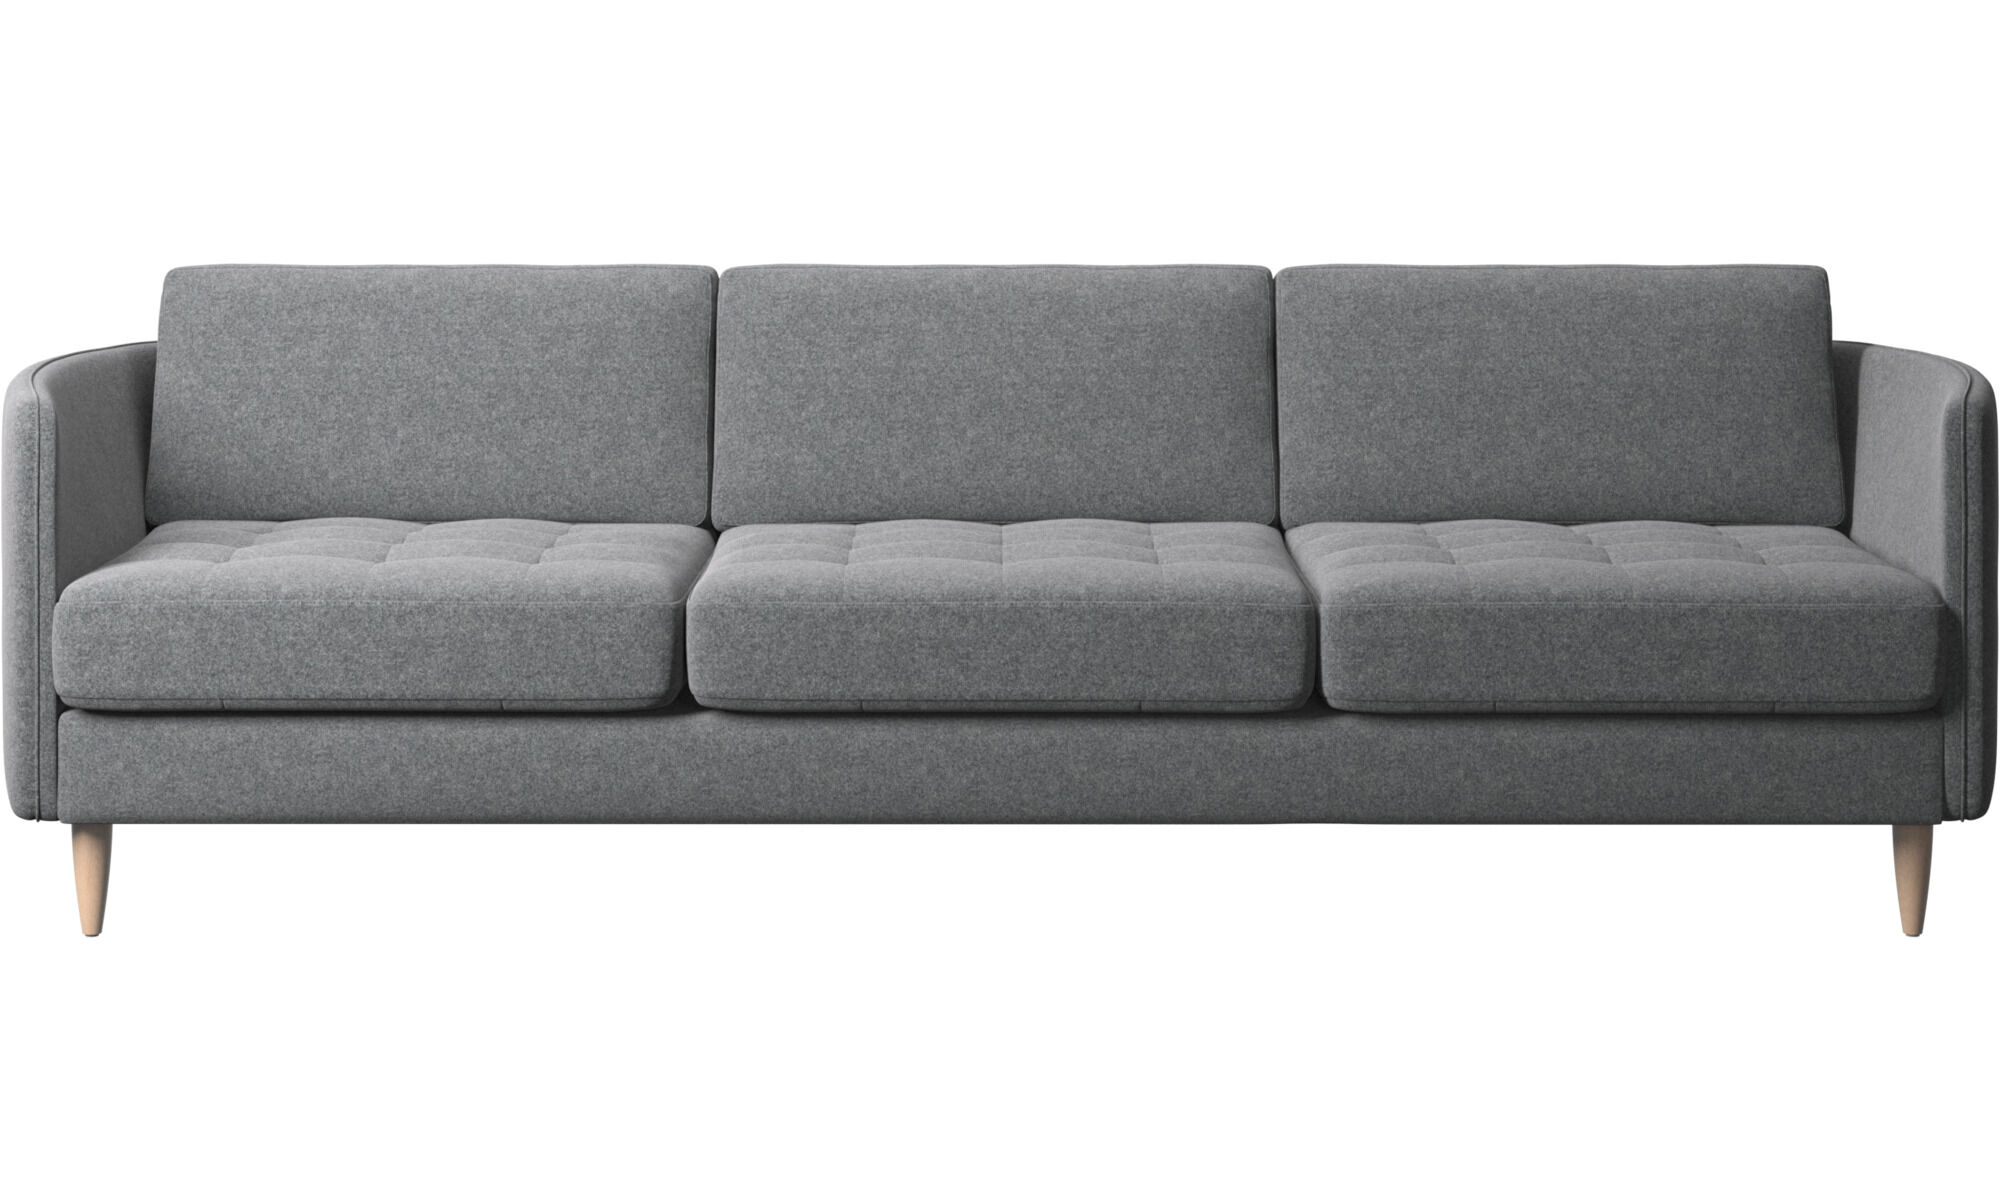 Sofa Bed For Sale Toronto Discover Contemporary Designer Sofas Boconcept